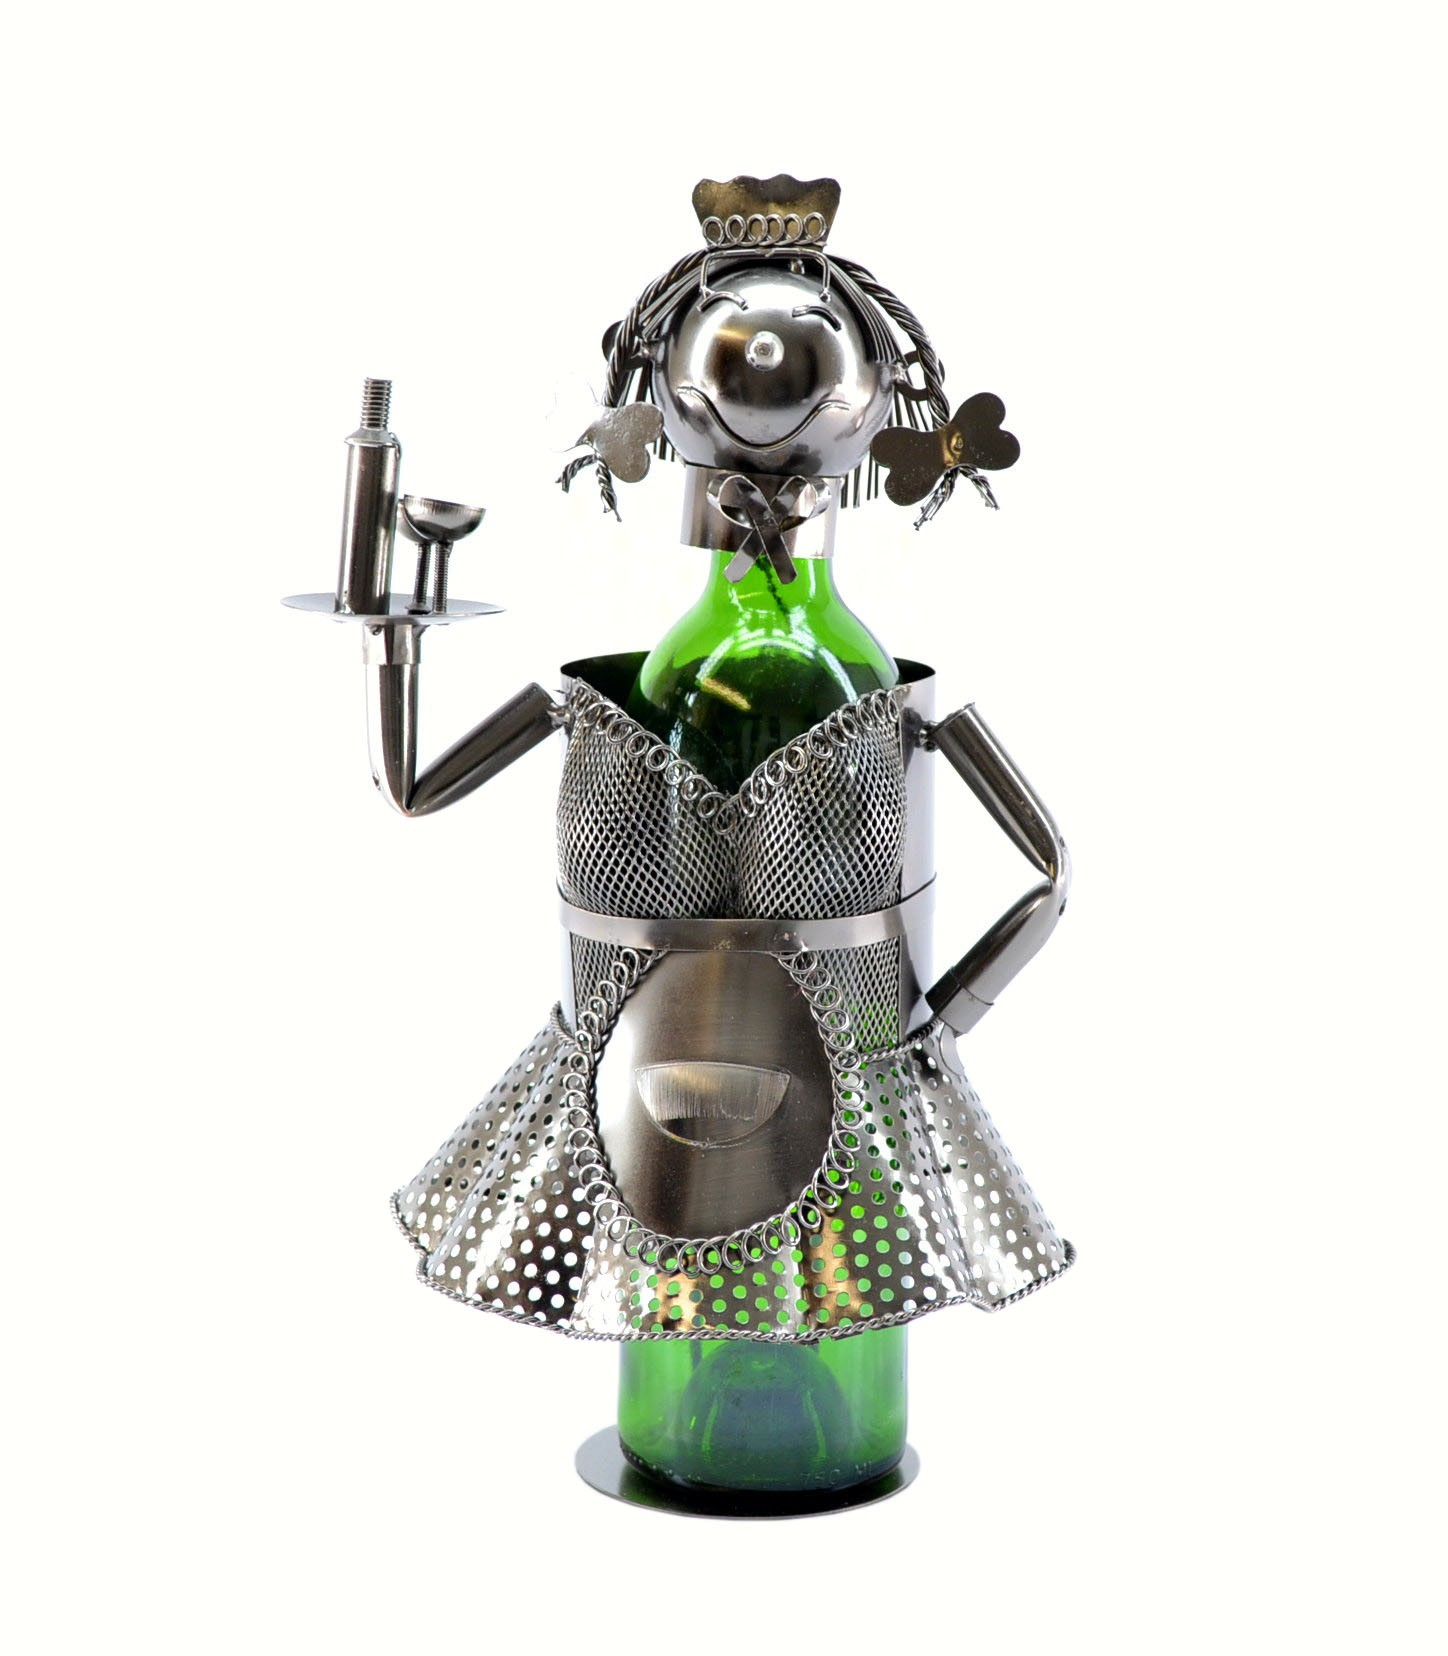 French Waitress Wine Bottle Holder